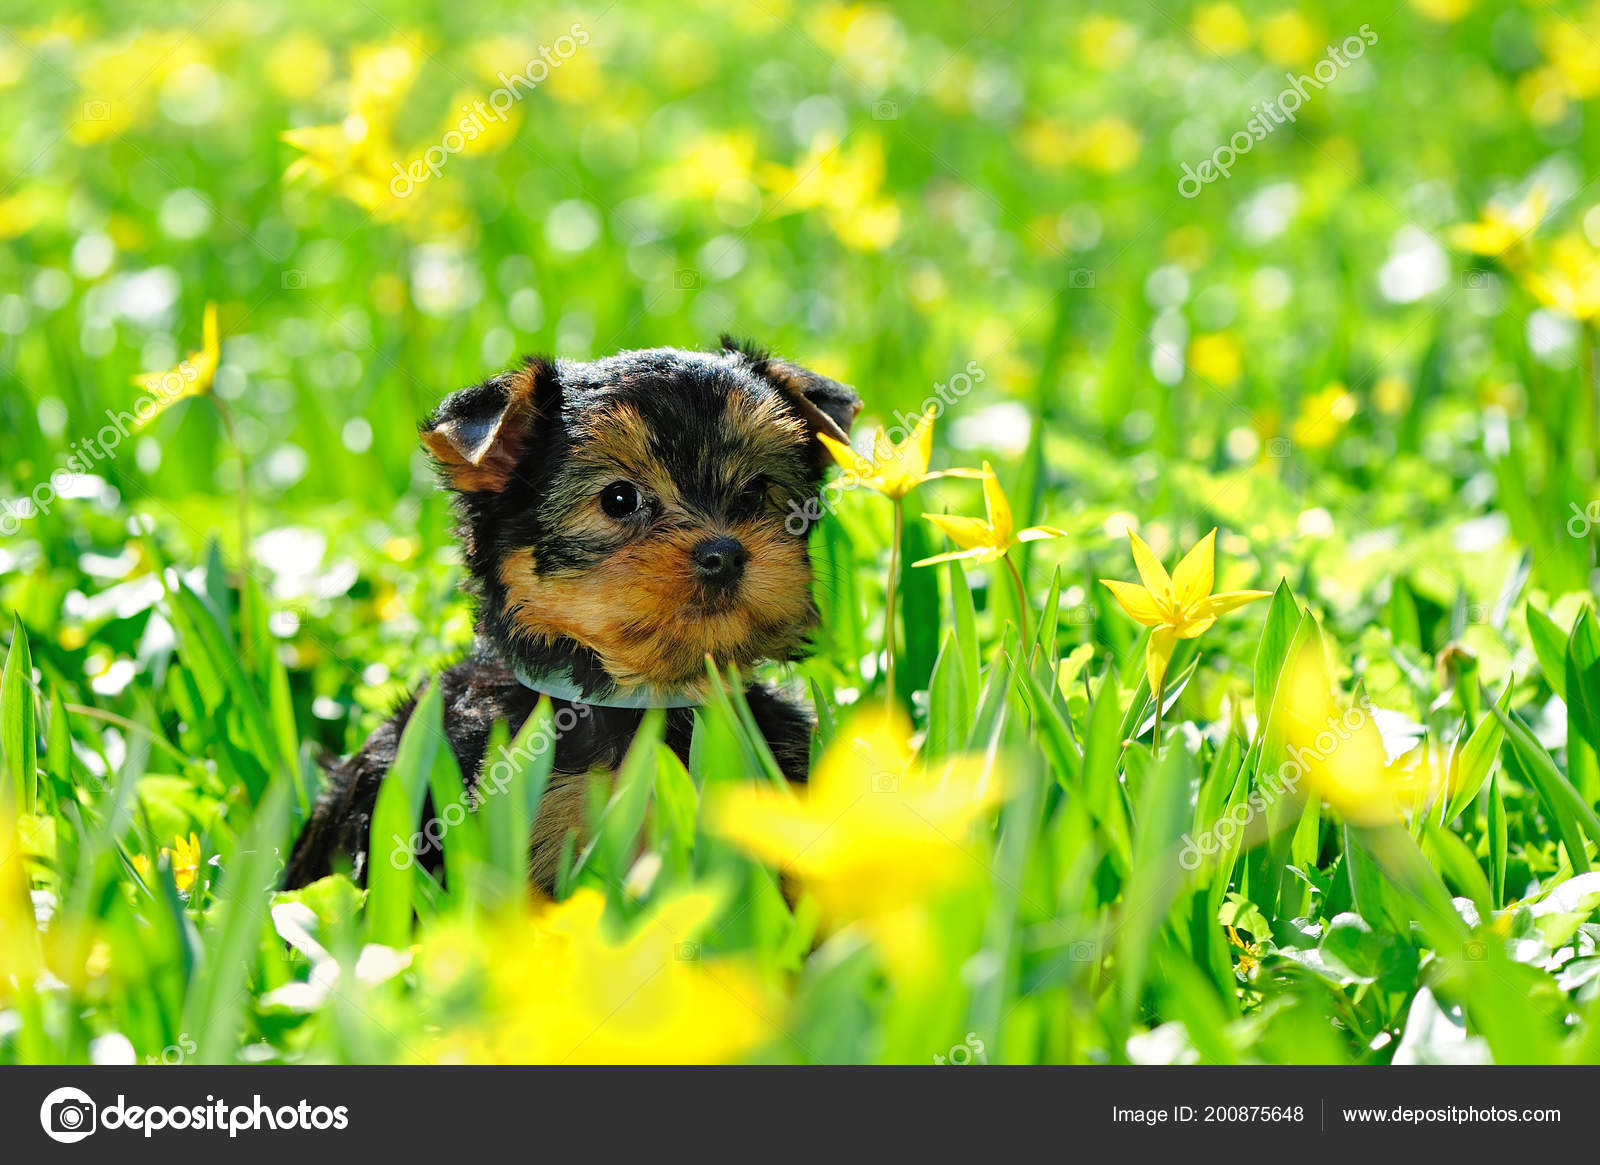 Cute Yorkshire Terrier Puppy Sitting Lawn Yellow Flowers Stock